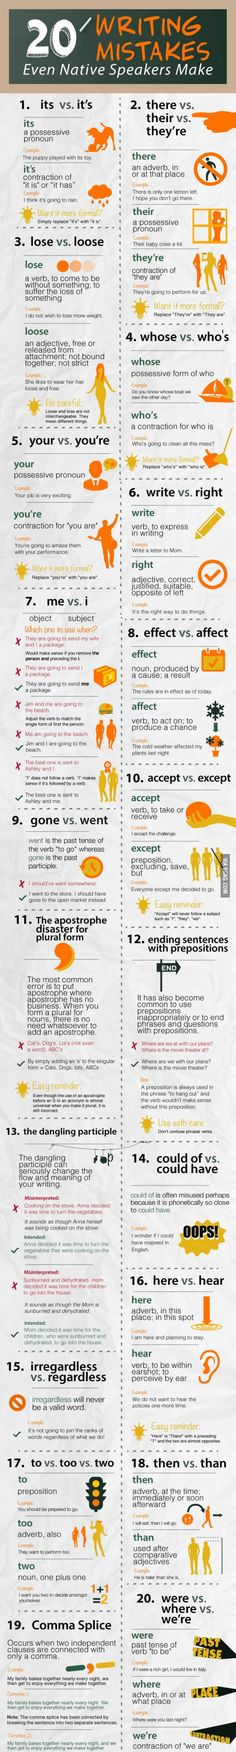 20 Writing Mistakes Even Native Speakers Make